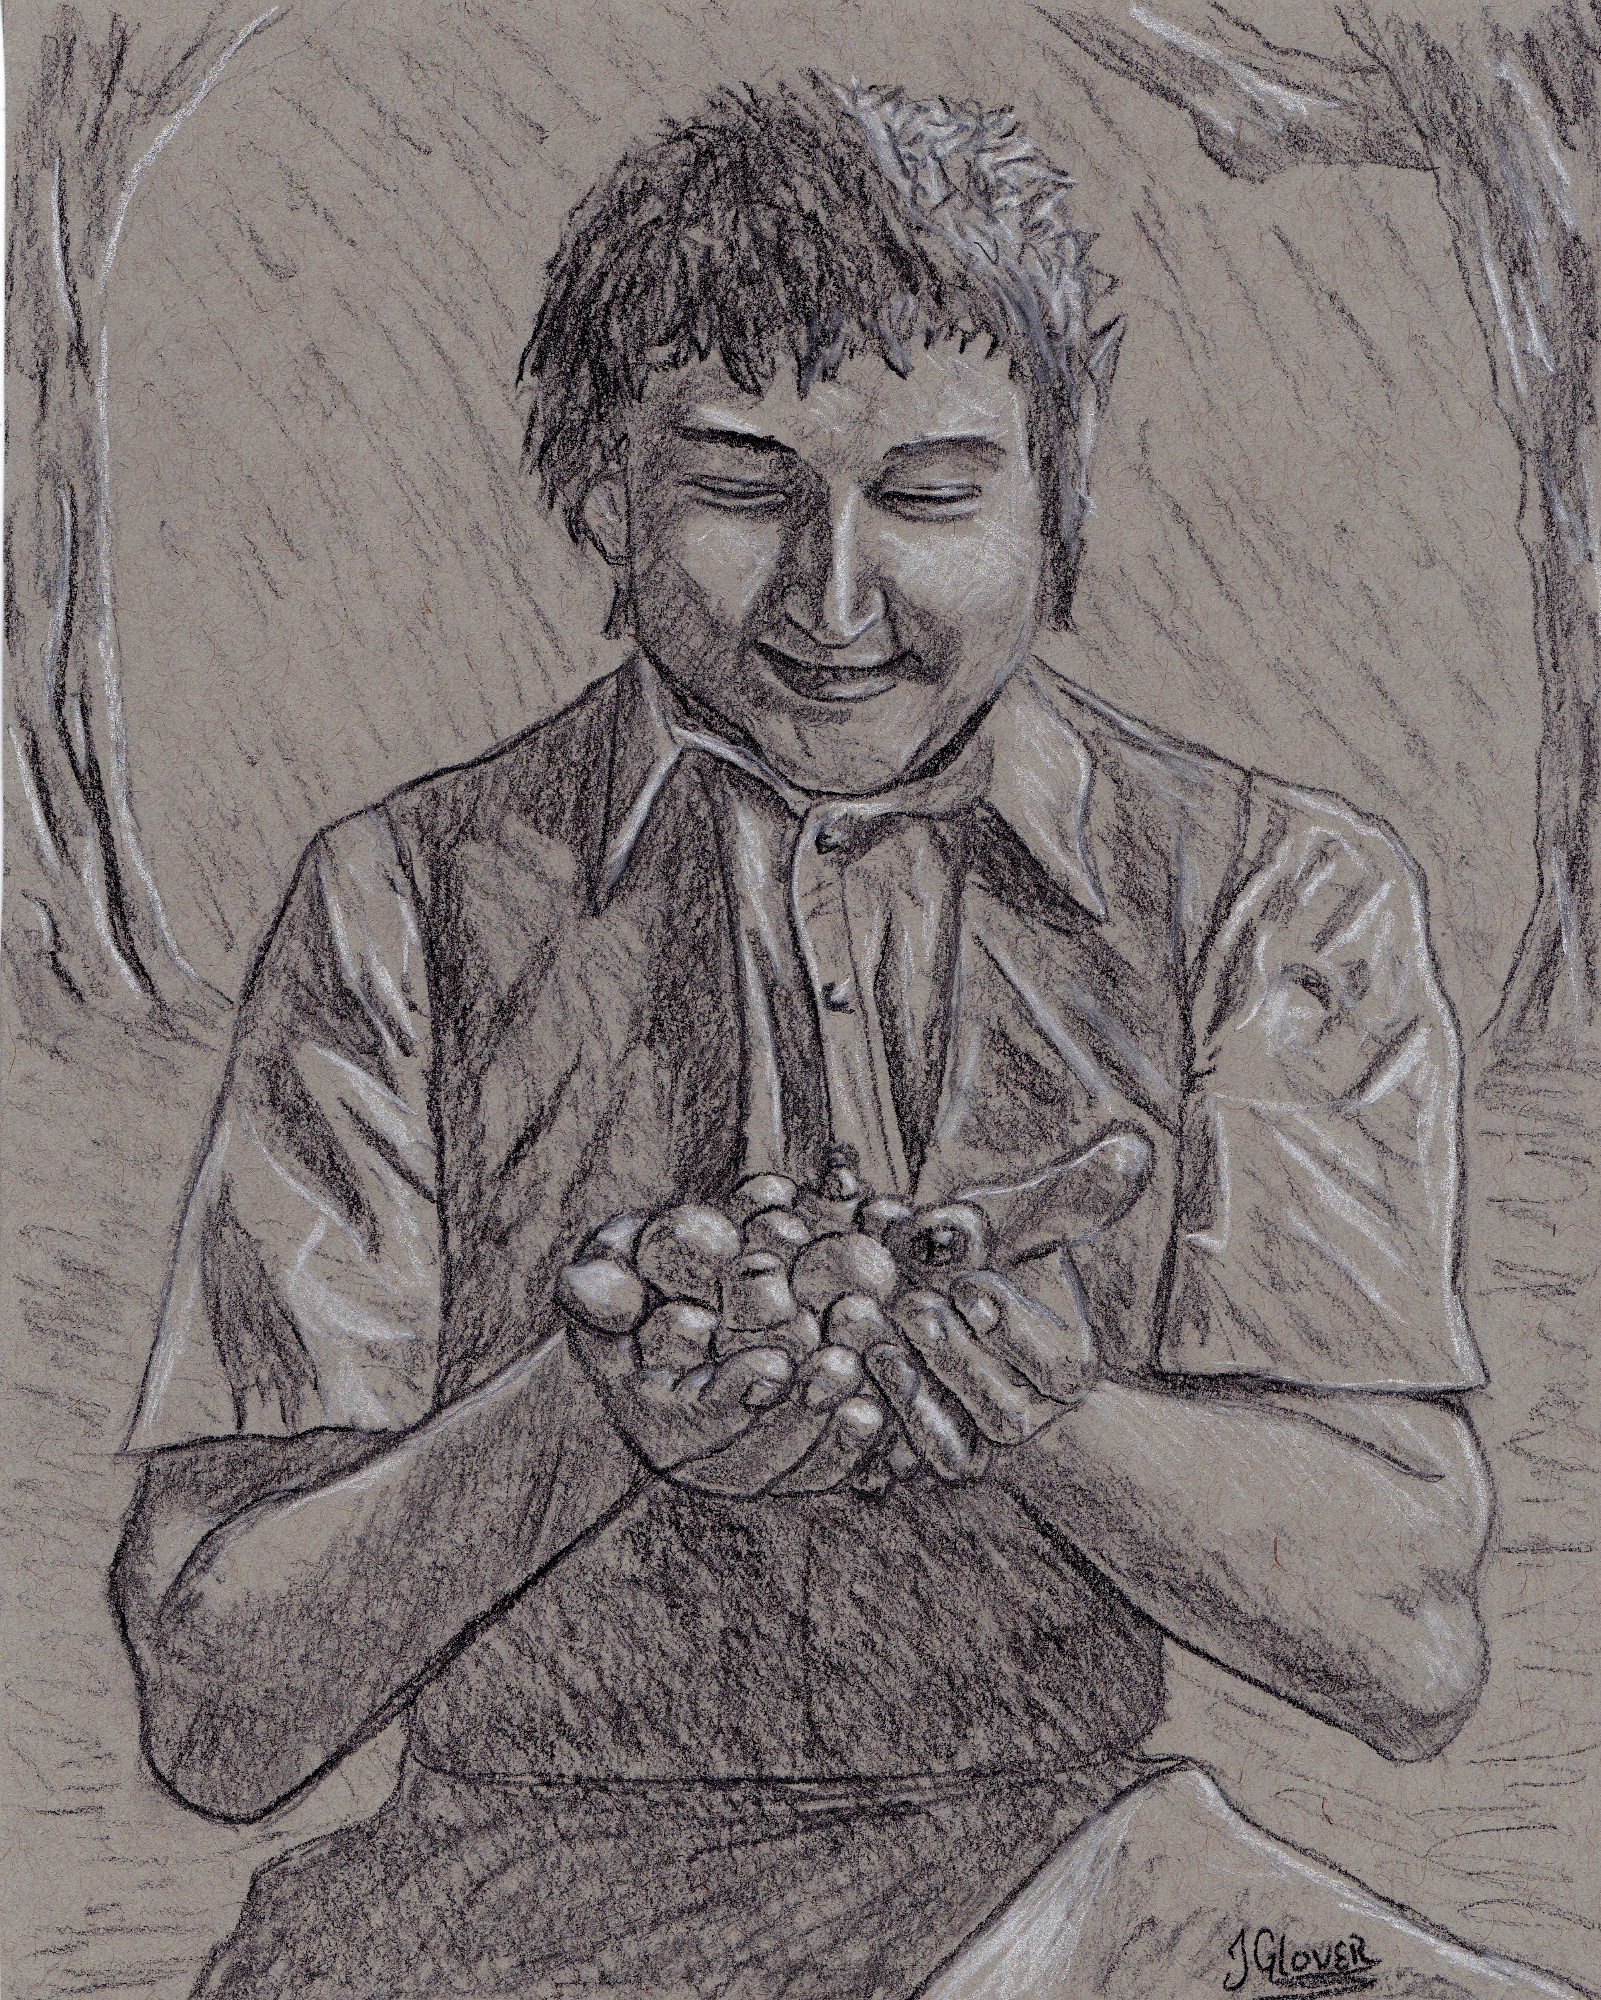 lord of the rings - art - illustration - fantasy - jrr tolkien - charcoal - drawing - JGlover